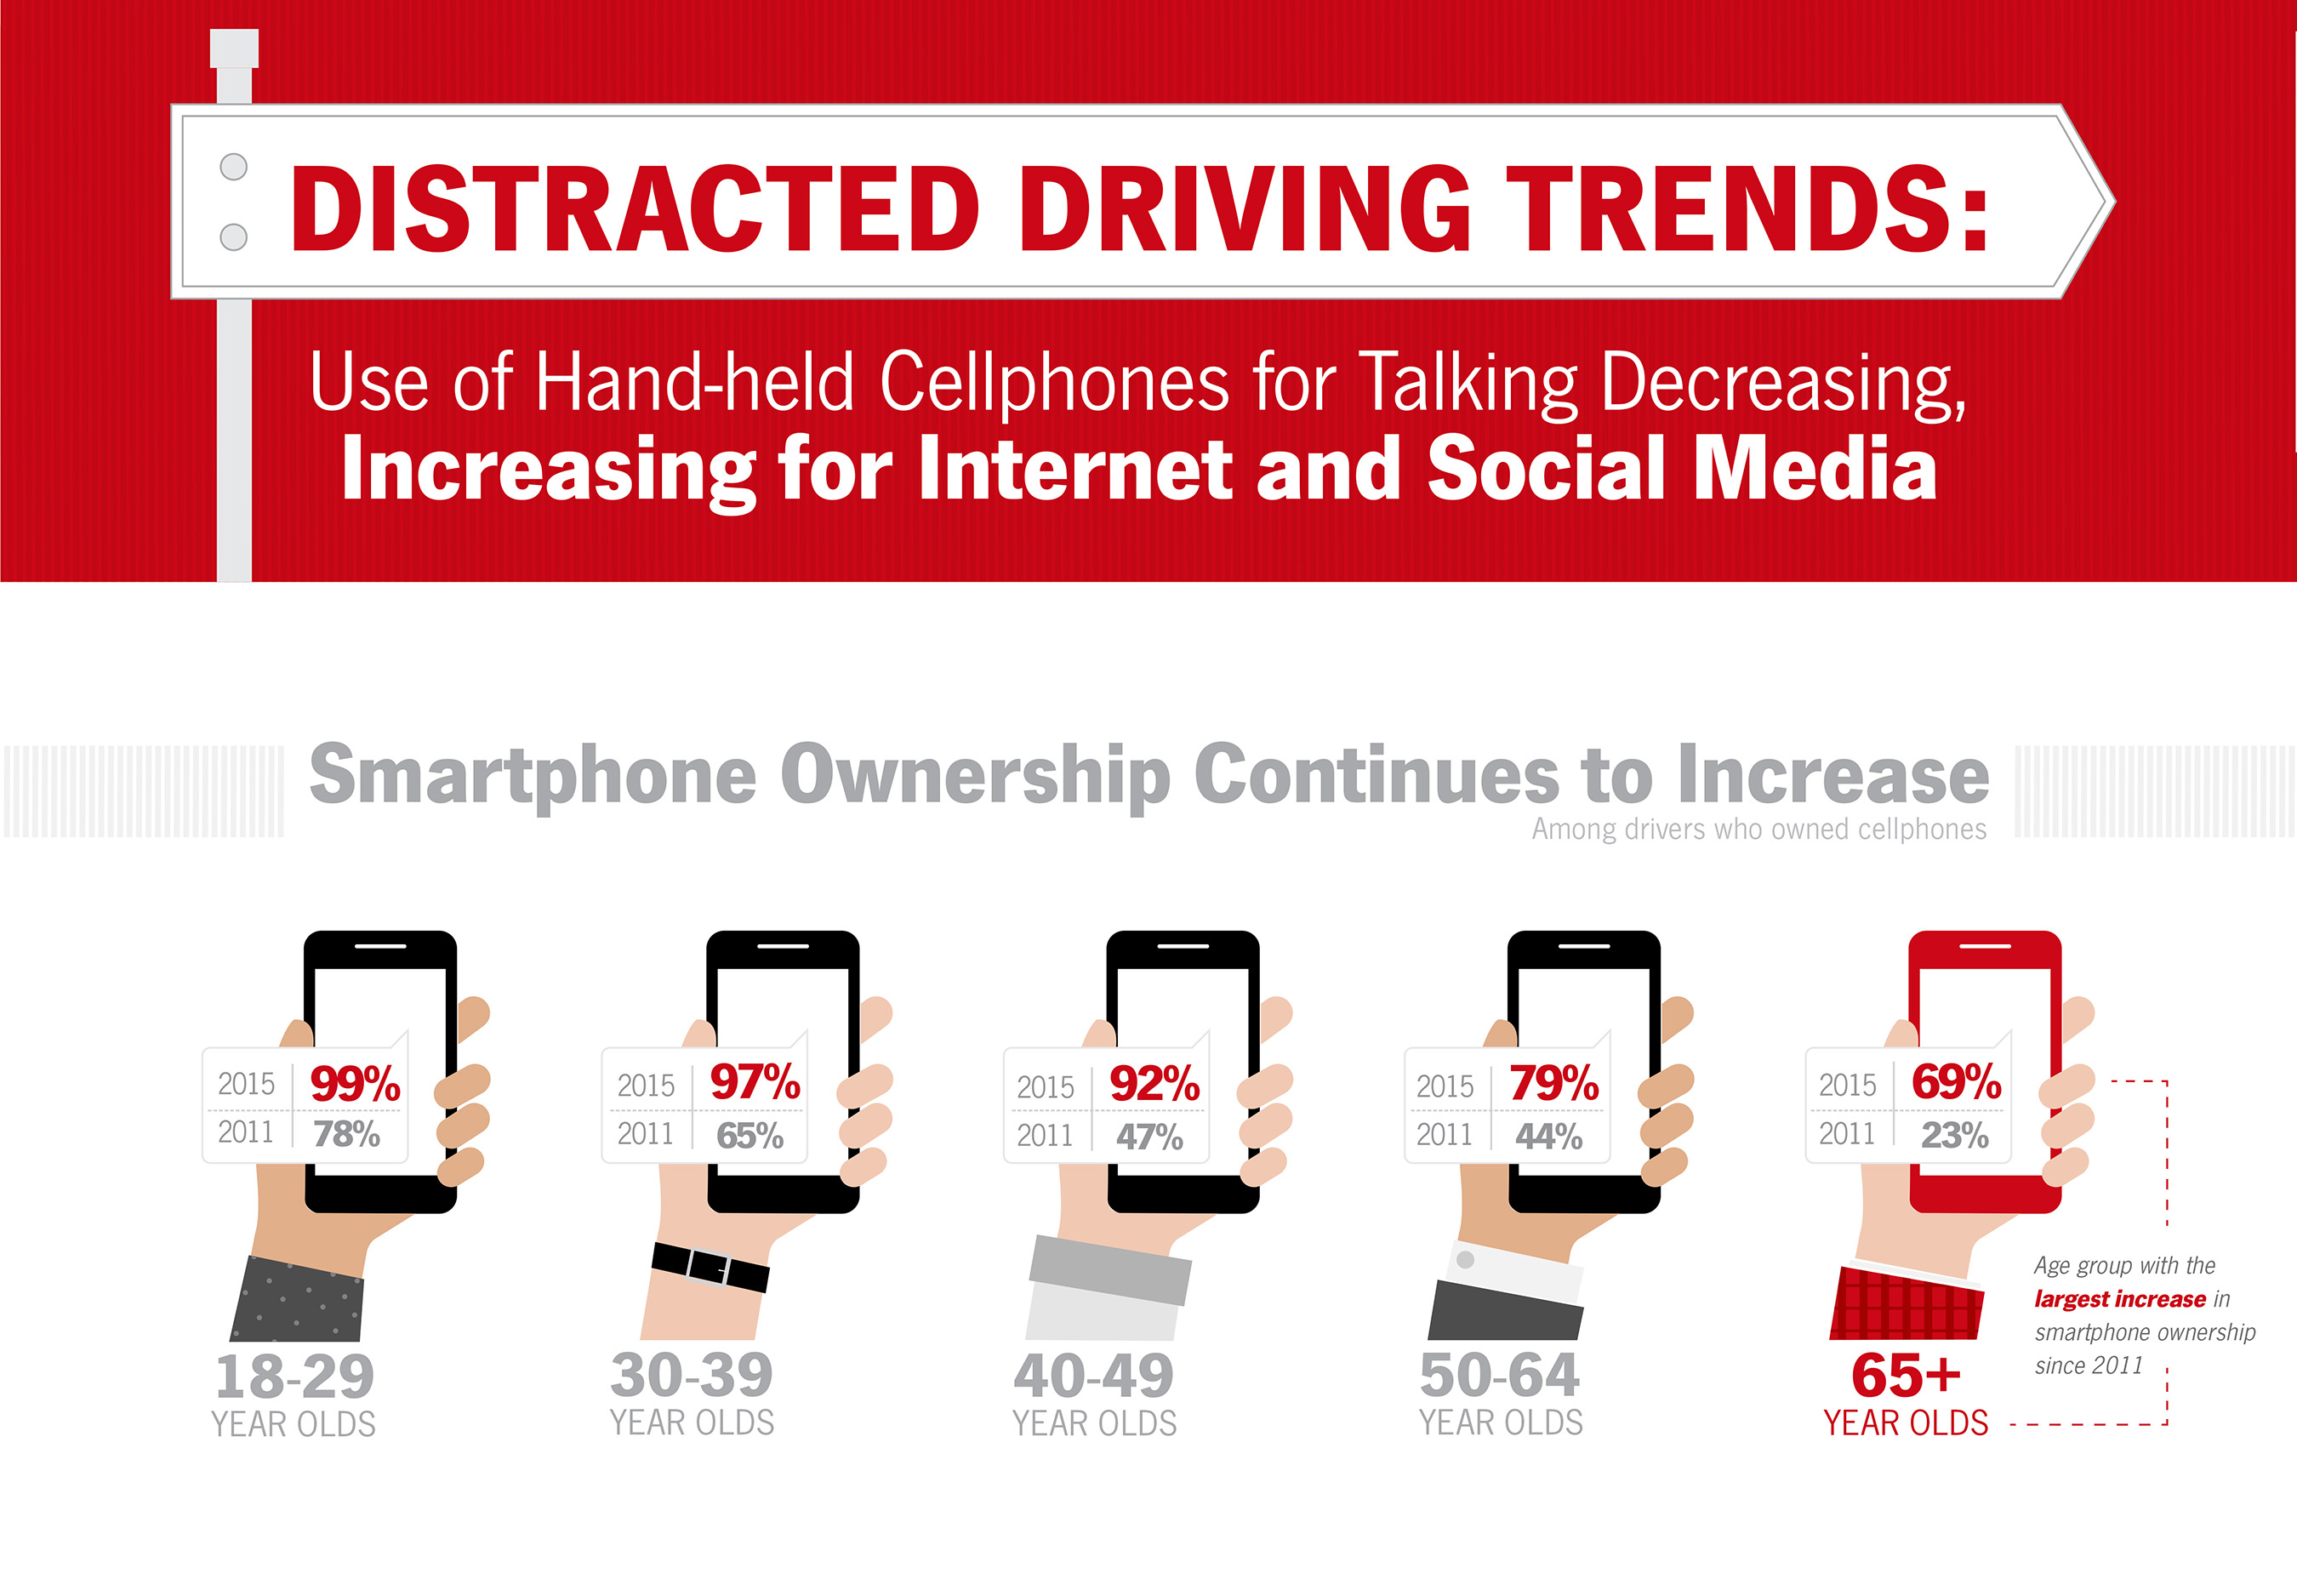 Distracted Driving Trends: Smartphone Ownership Continues to Increase